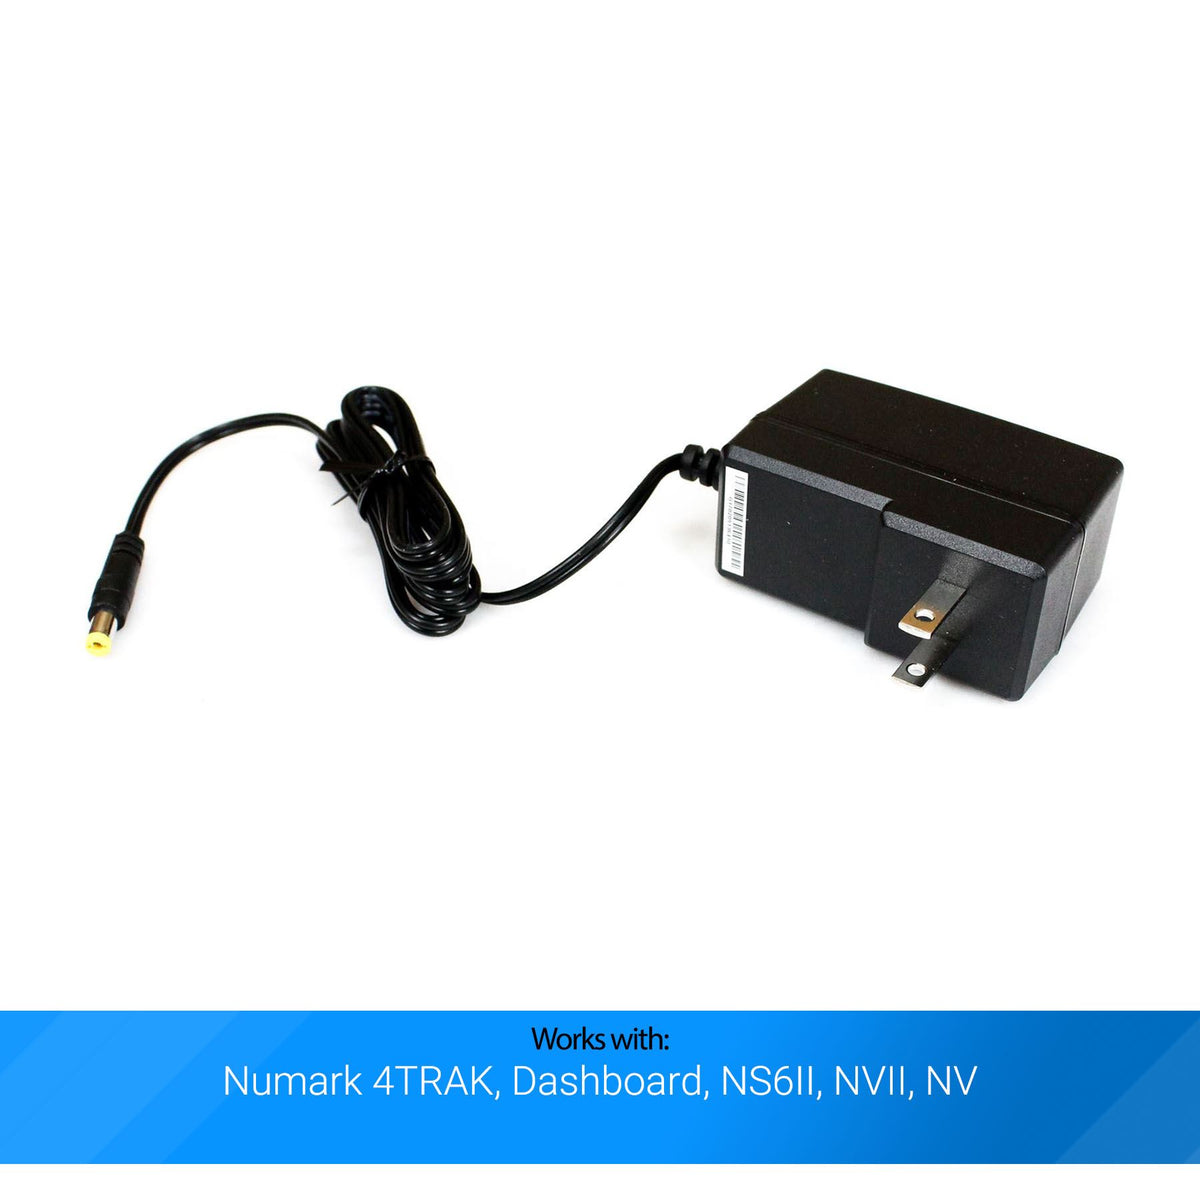 Numark 4TRAK, Dashboard, NS6II, NVII, NV Power Adapter